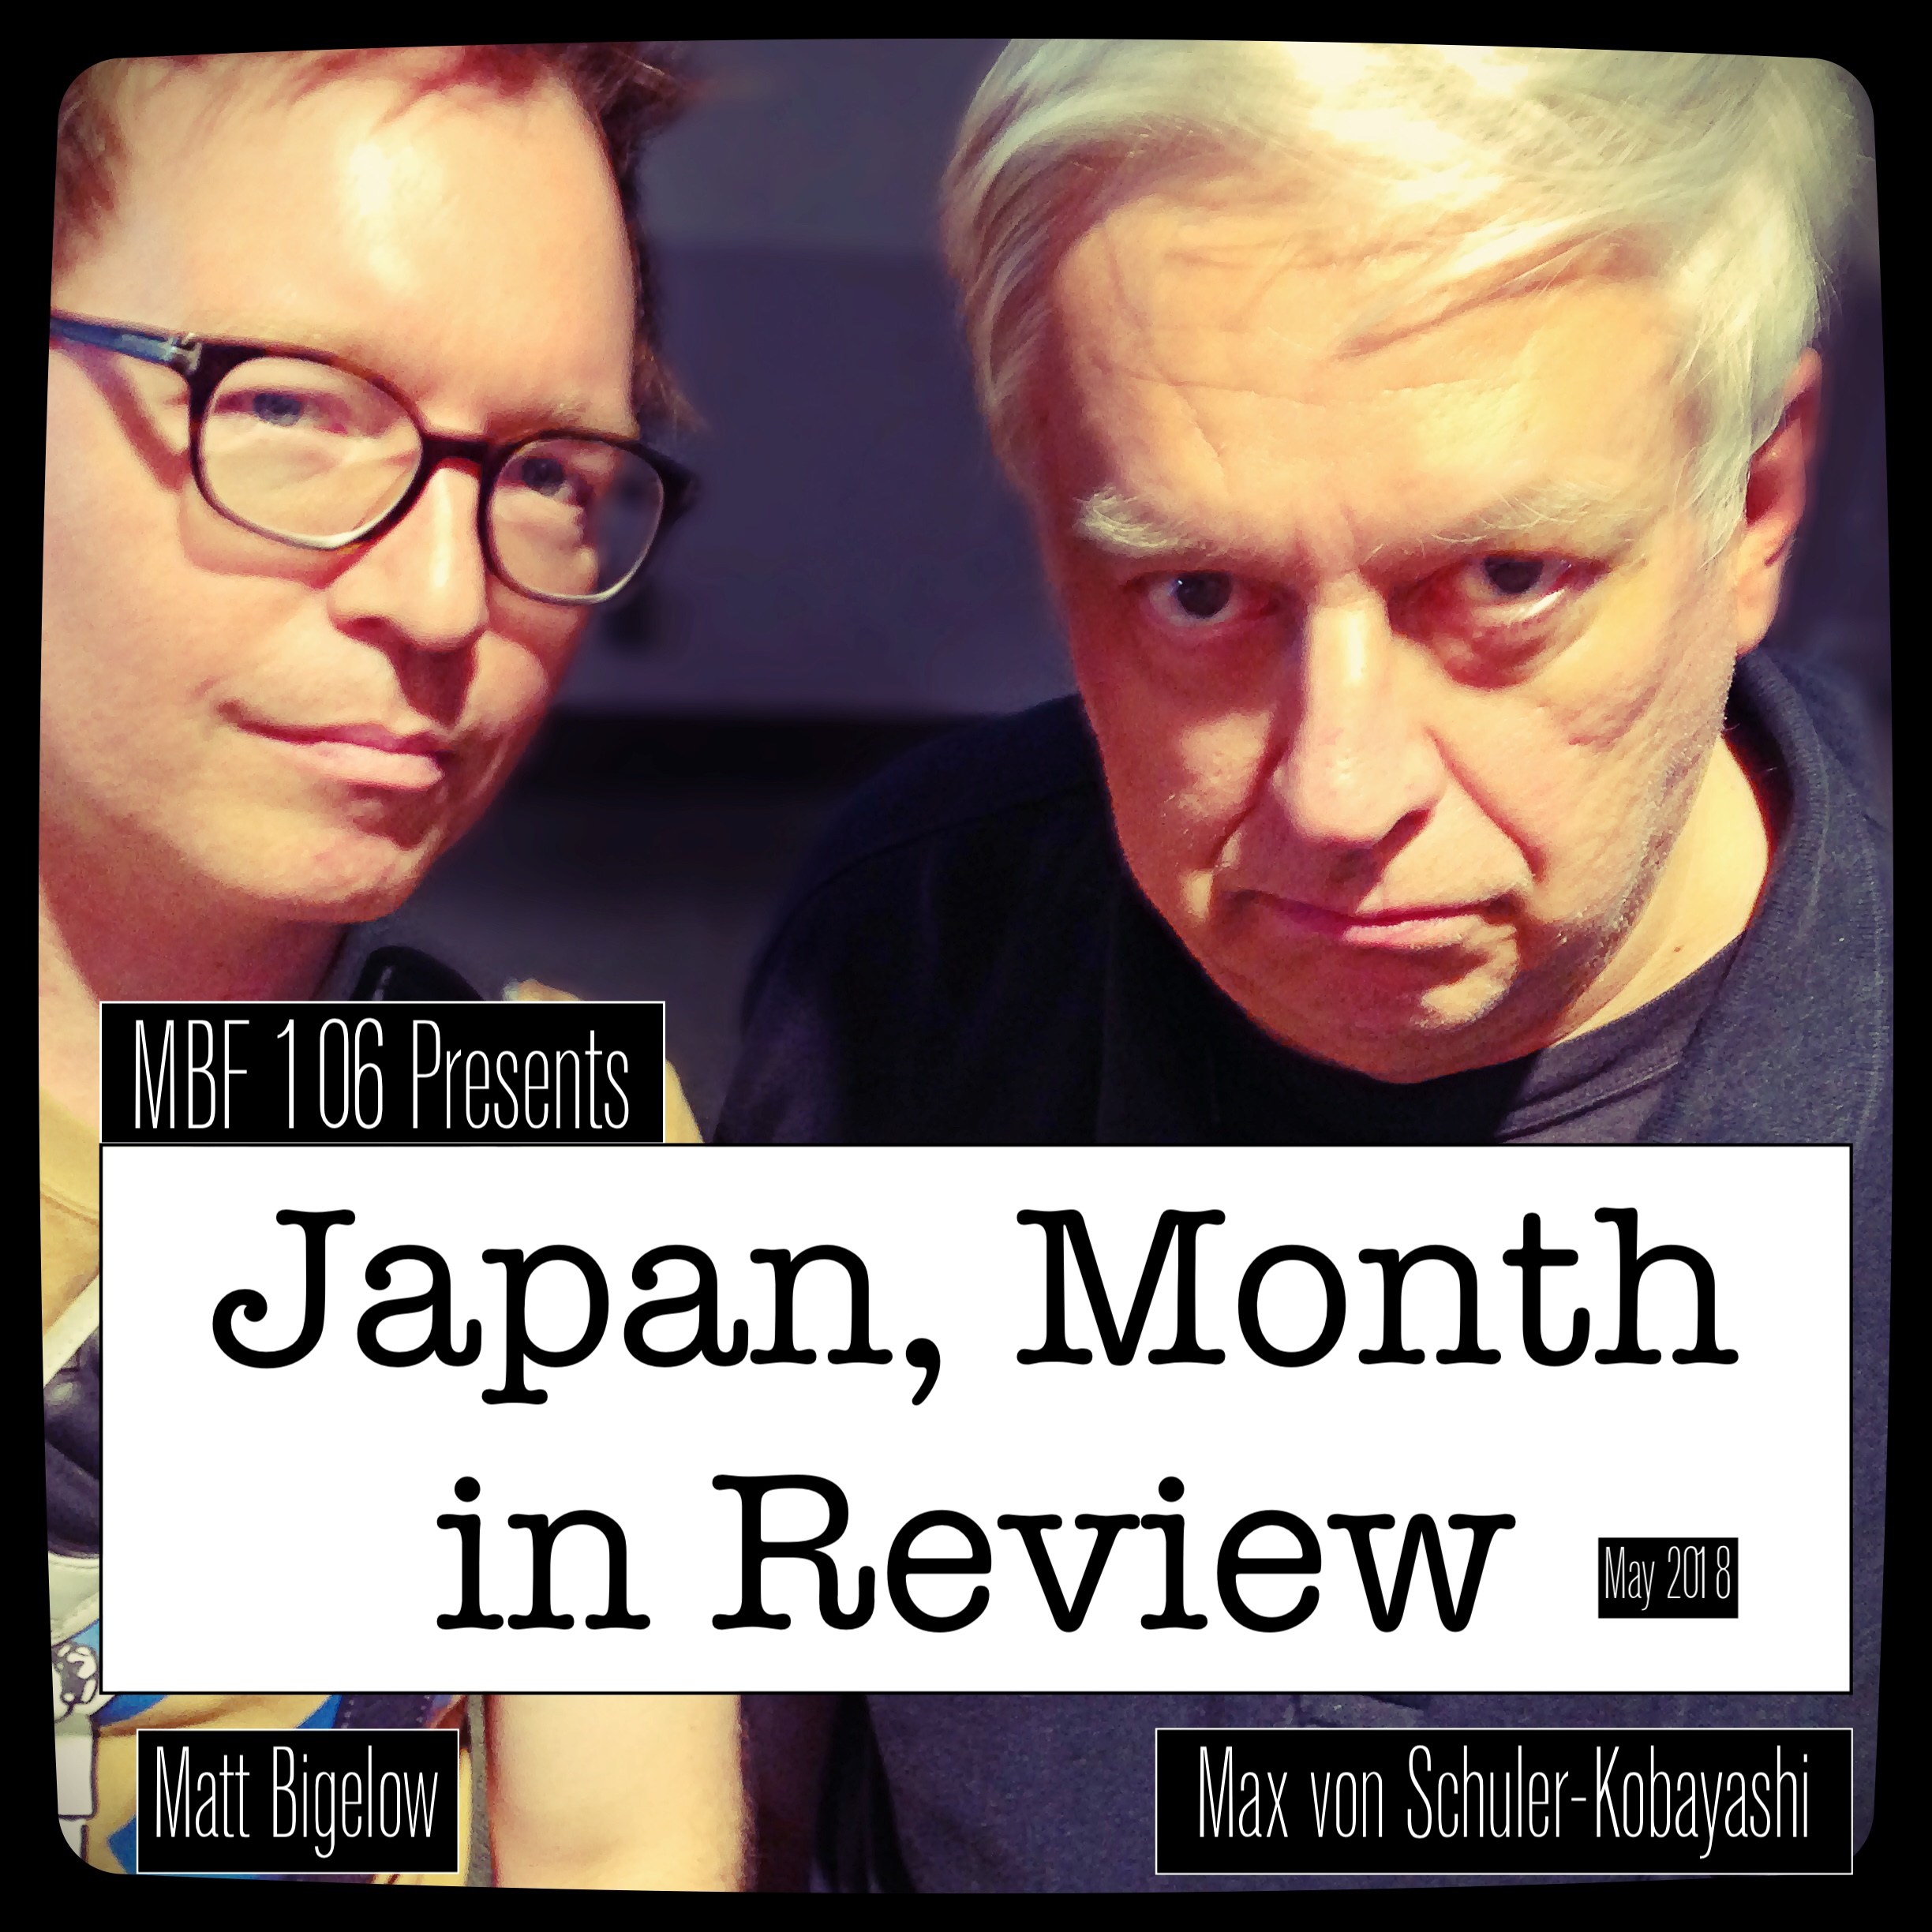 MBF 106 Japan Month in Review May 2018.JPG